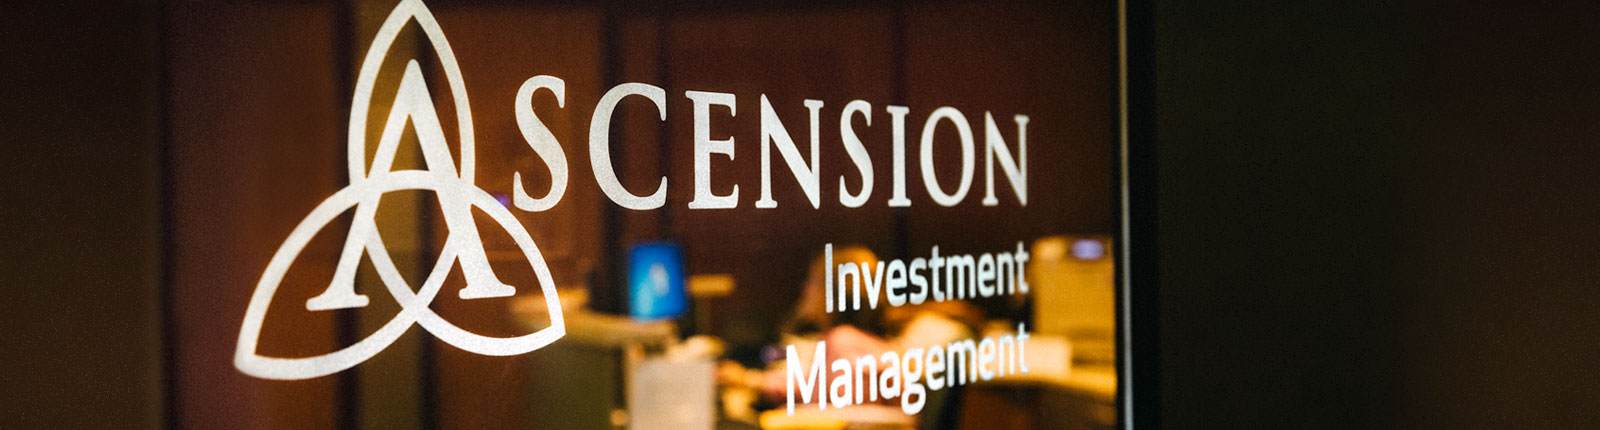 Ascension Investment Management office sign